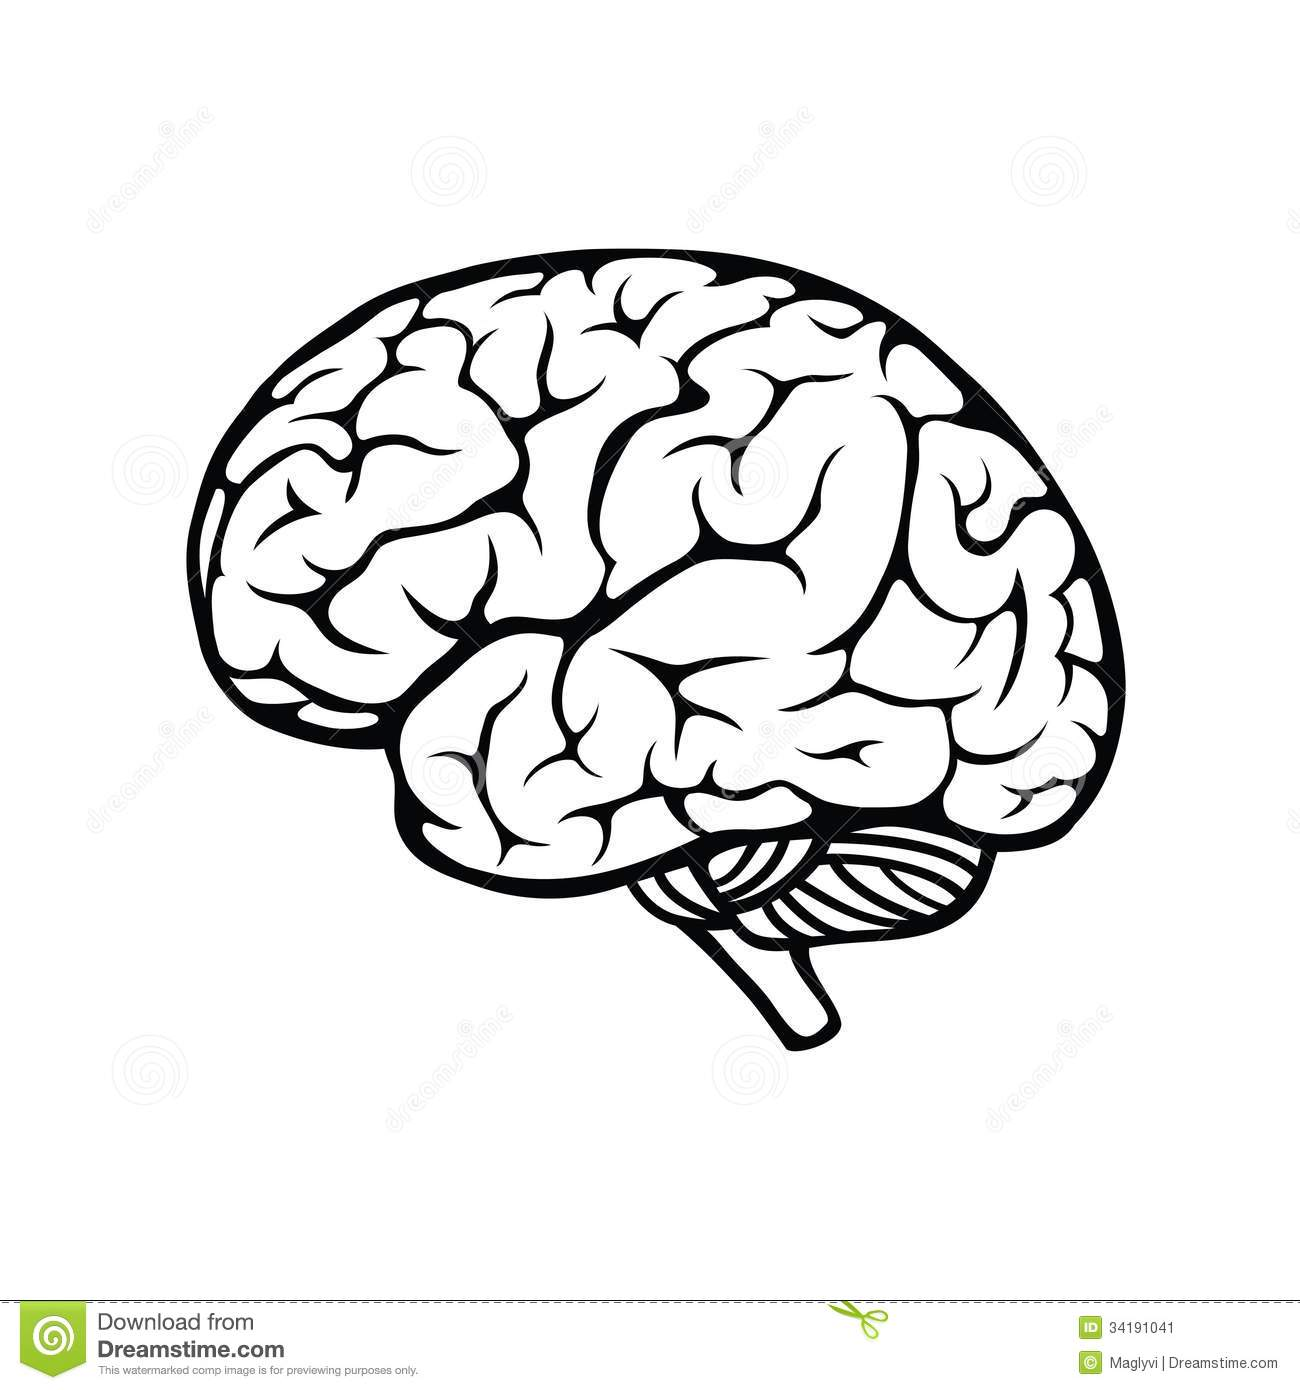 15 Brain Vector Art Images